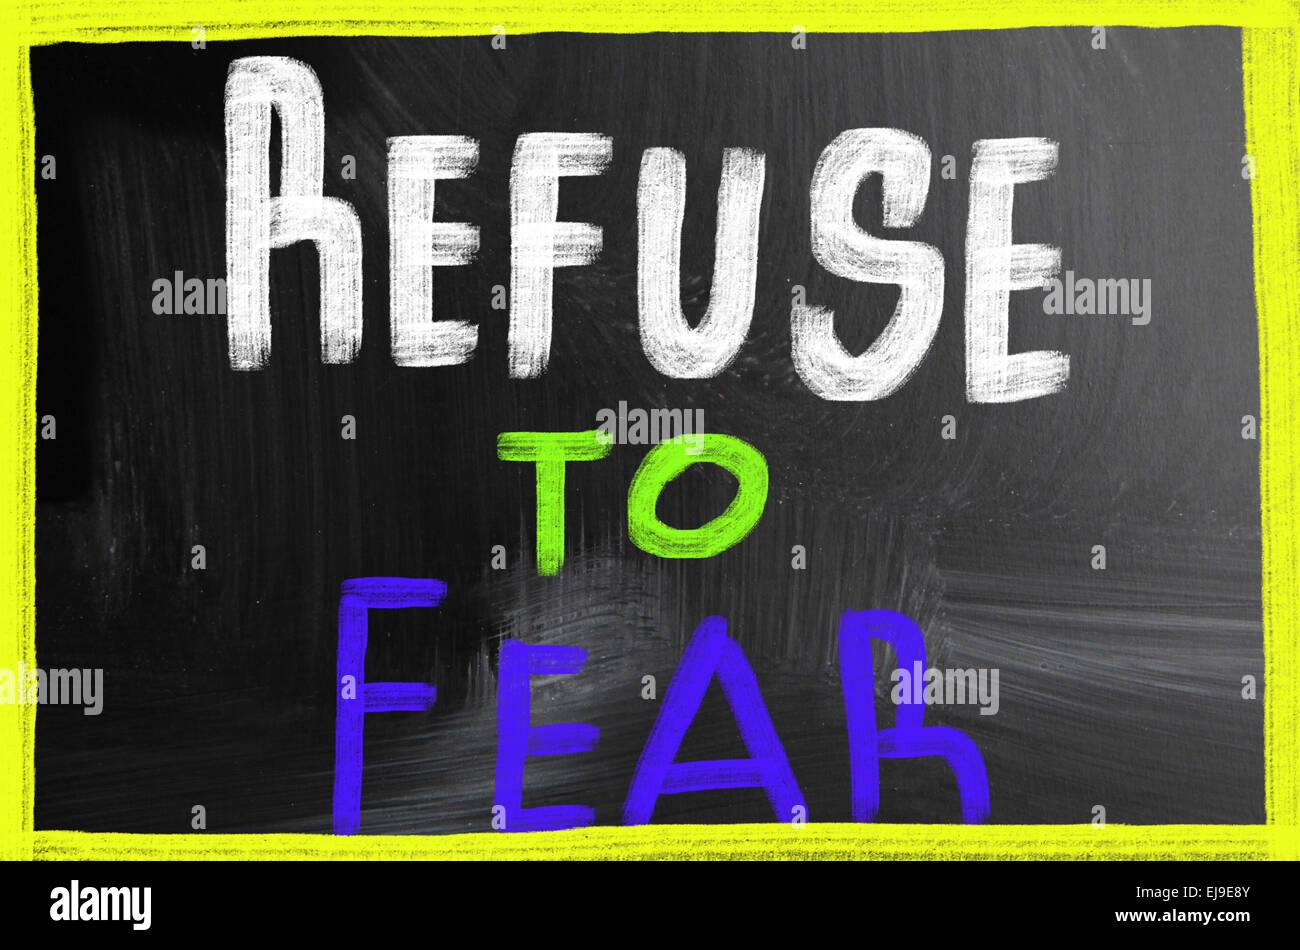 refuse to fear - Stock Image